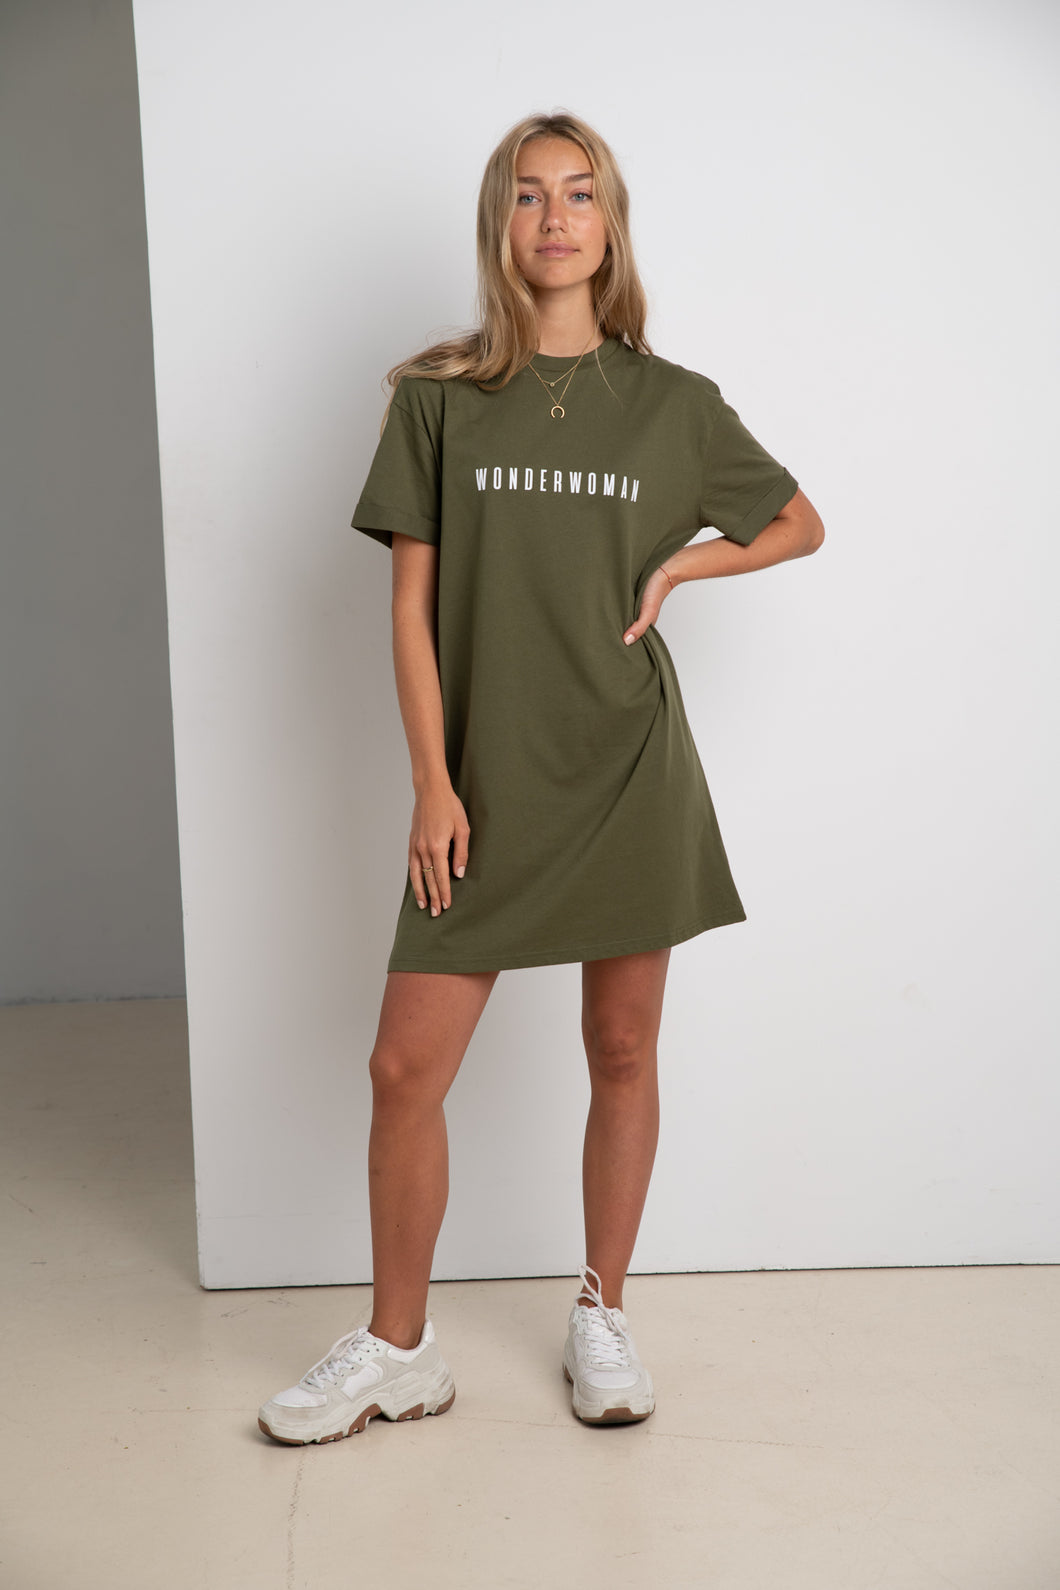 WONDERWOMAN #ECOFRIENDLY dress in khaki